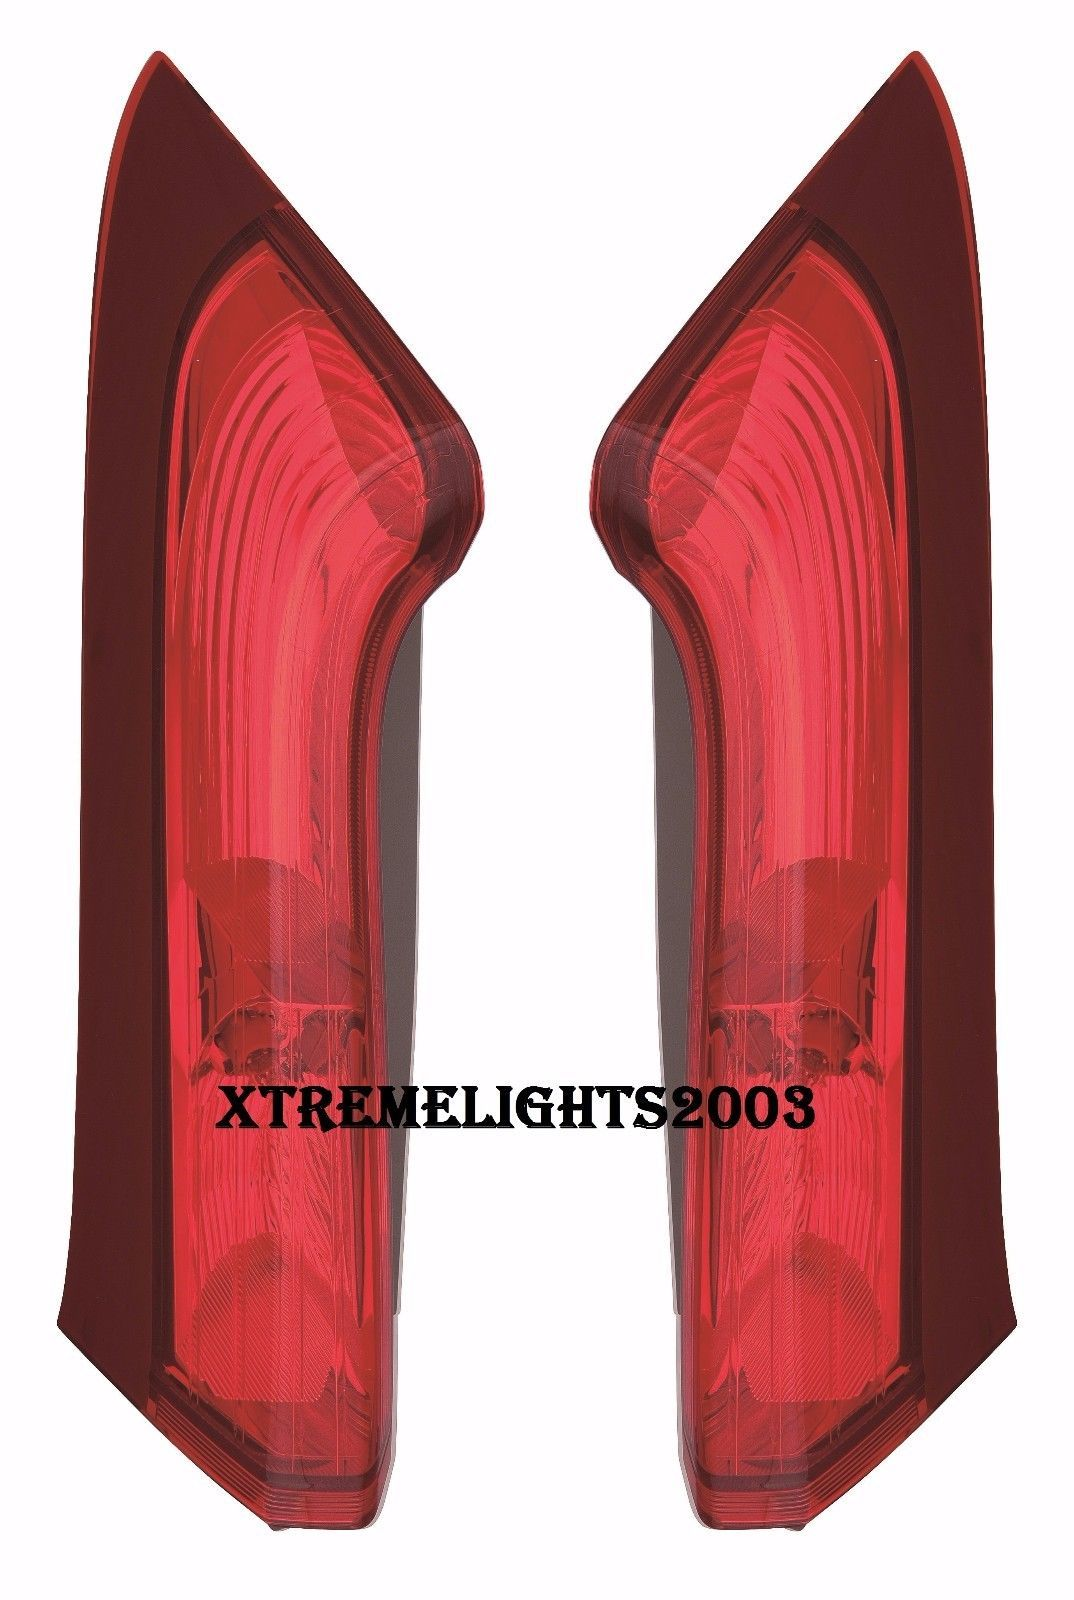 HONDA CRV CR-V 2015 2016 RIGHT LEFT UPPER TAILLIGHTS TAIL LIGHTS REAR LAMPS PAIR